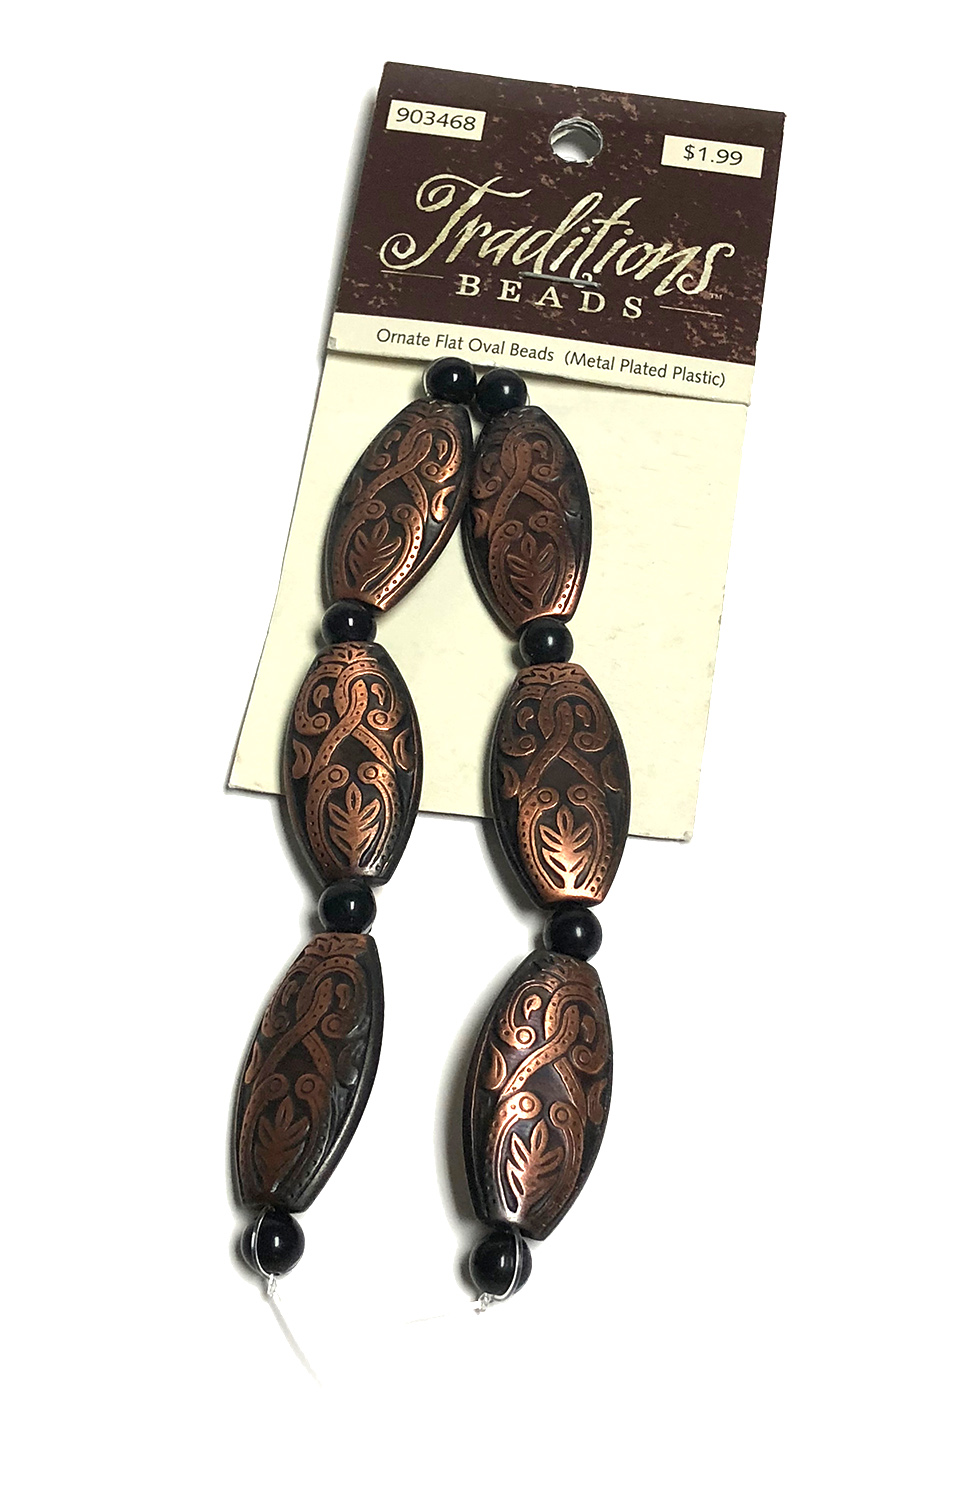 Traditions Ornate Flat Oval Beads 6 pcs